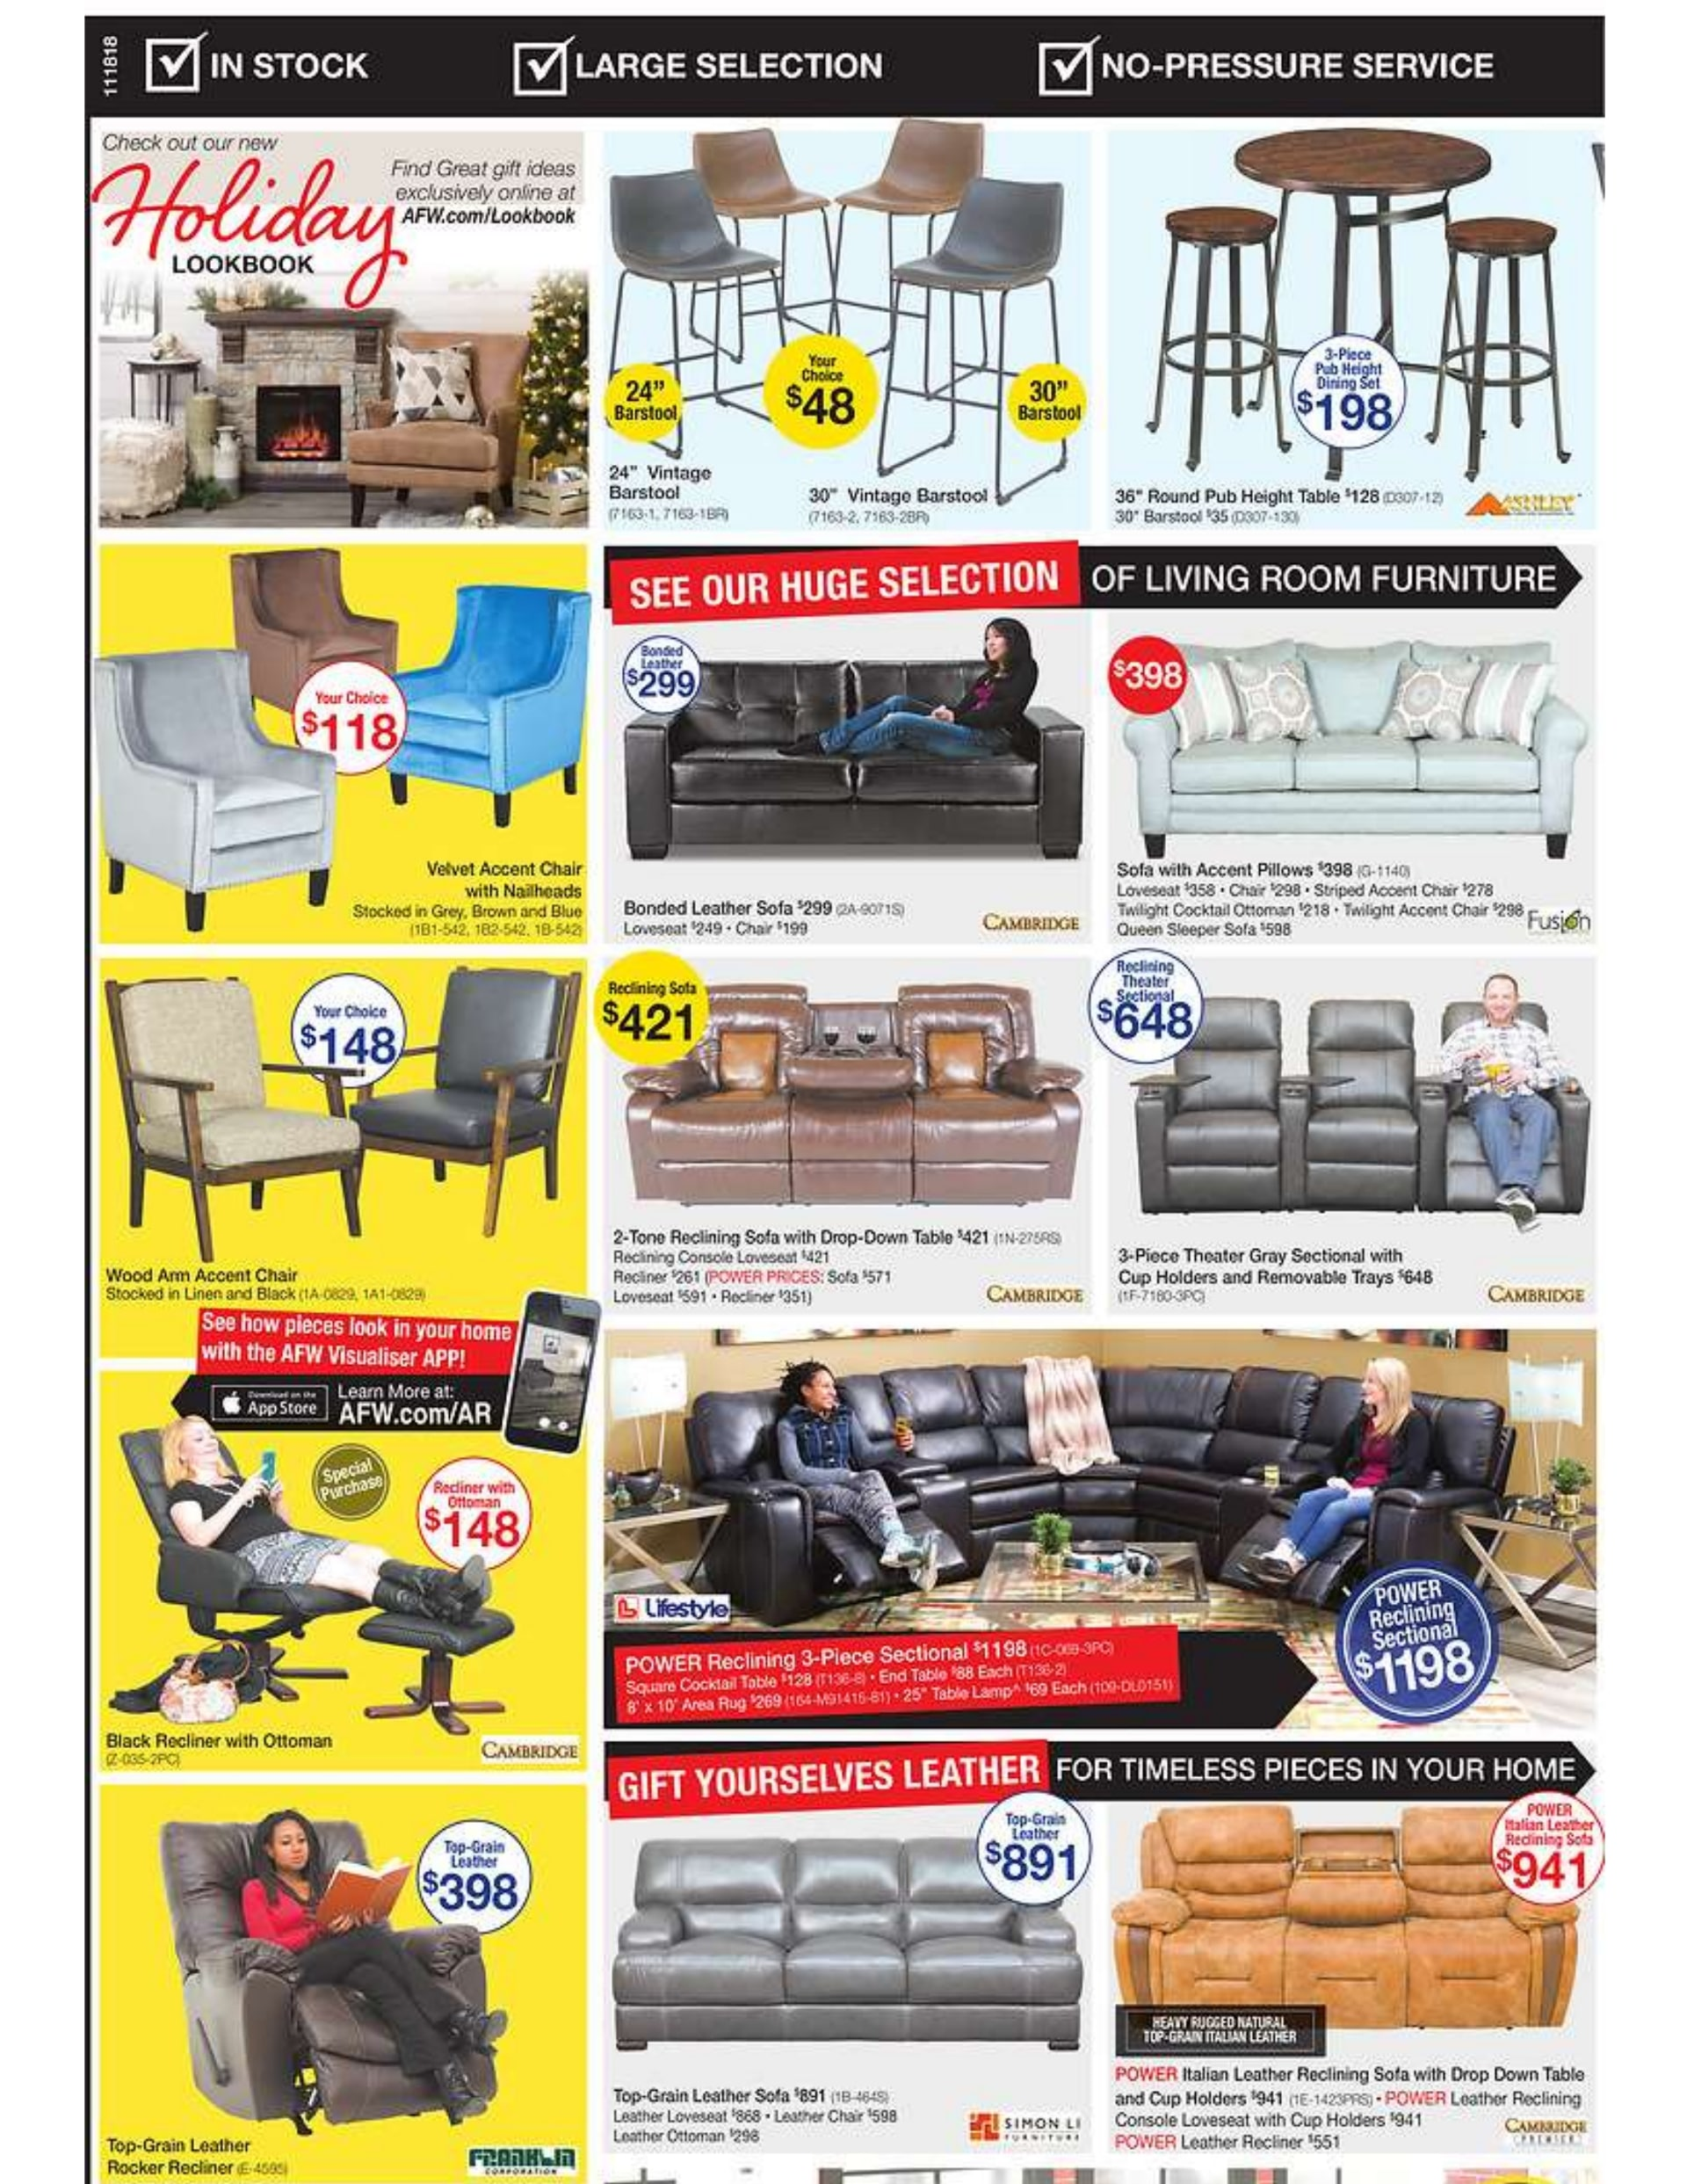 American Furniture Warehouse Black Friday Ad 2018